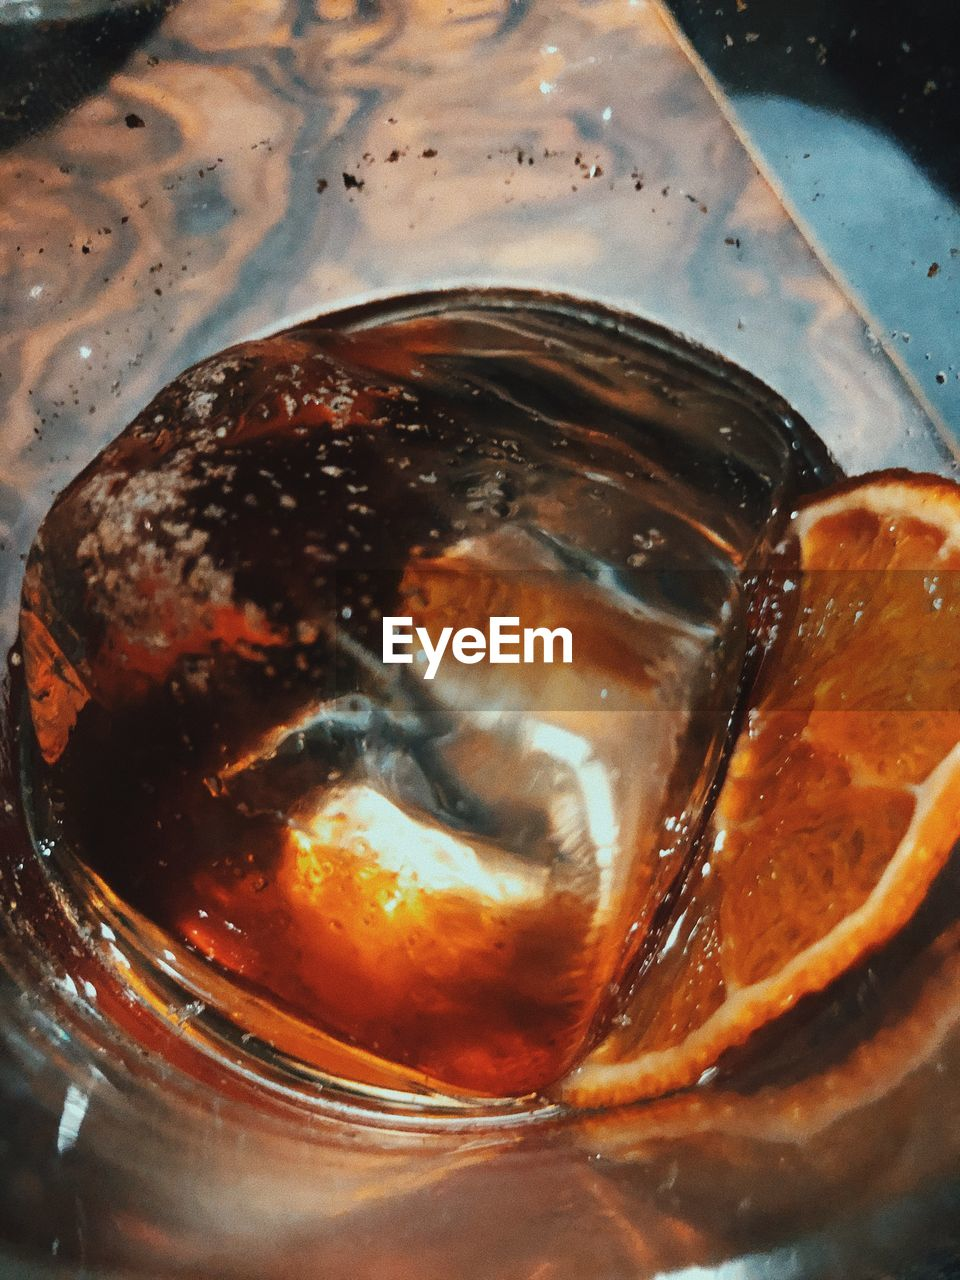 A glass of whiskey with an ice cube and an orange slice